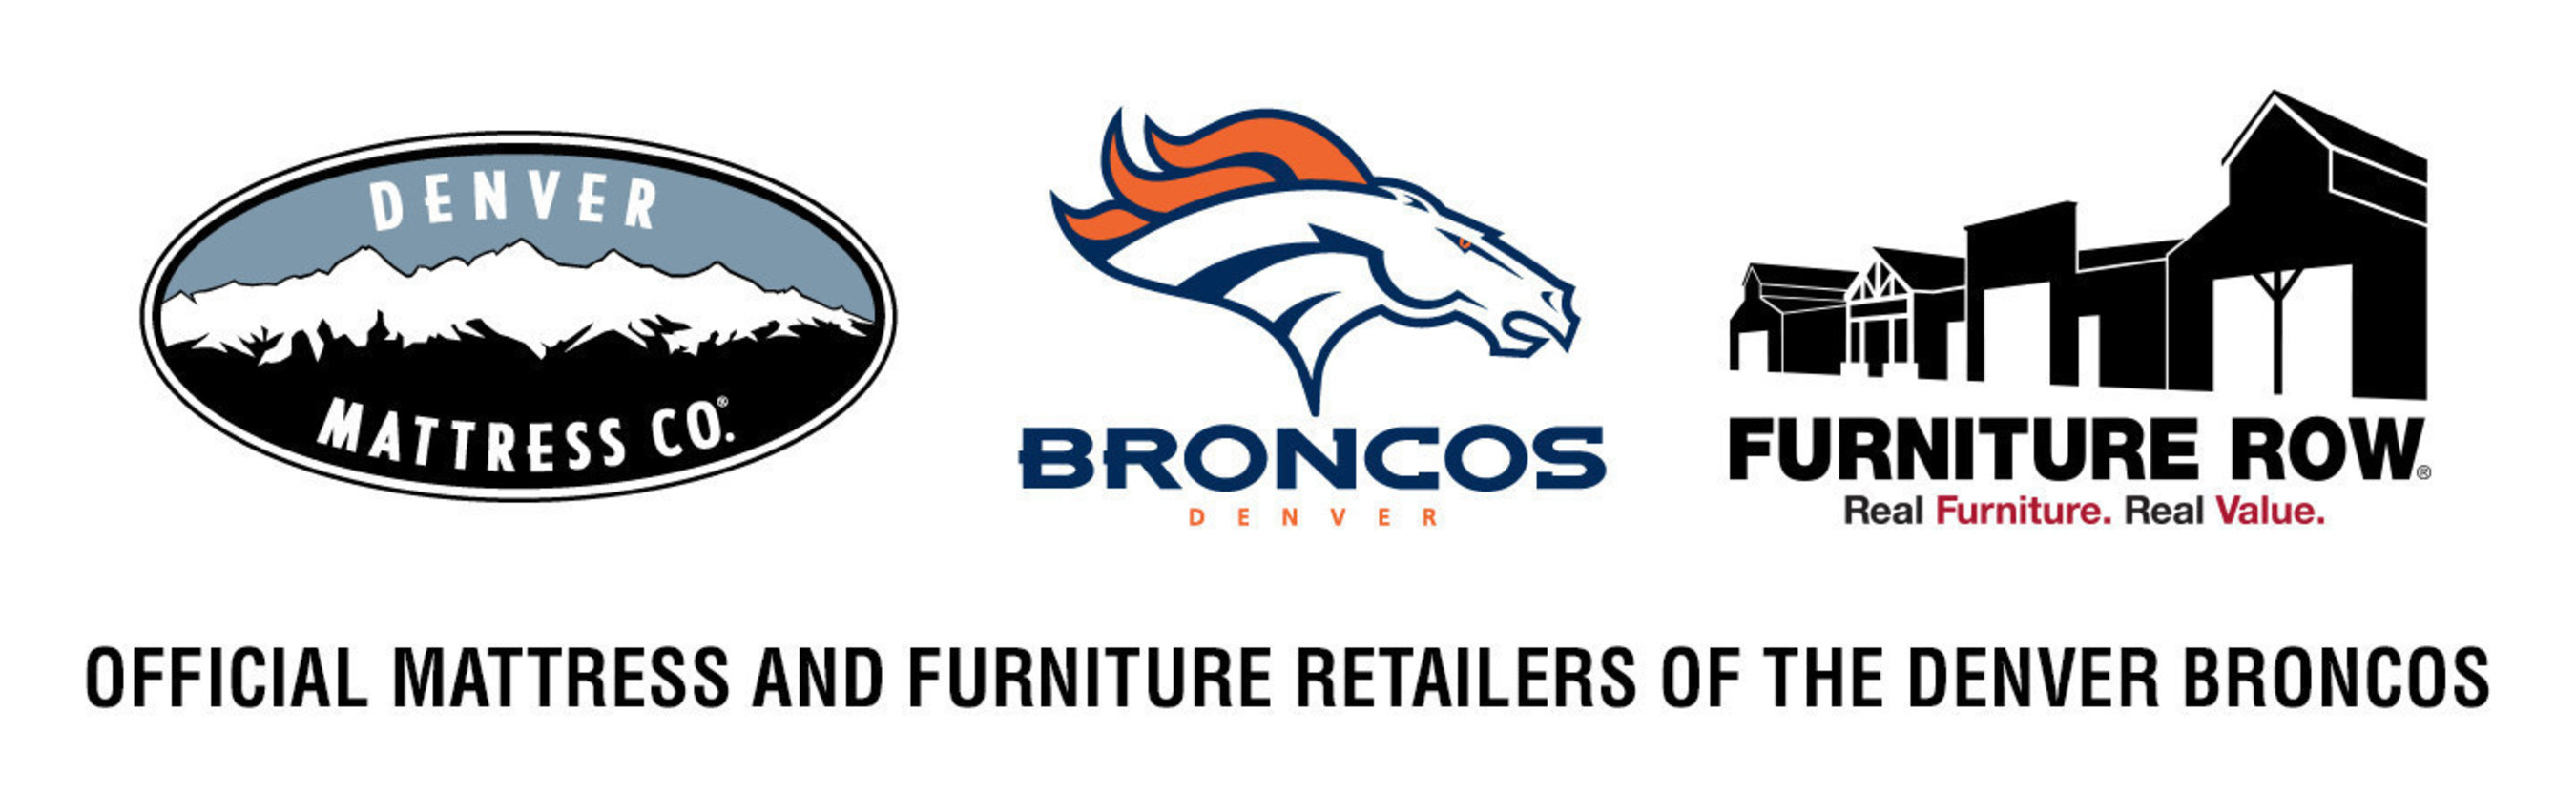 Denver Mattress And Furniture Row Will Once Again Sponsor The Denver Broncos  For The 2016 Season